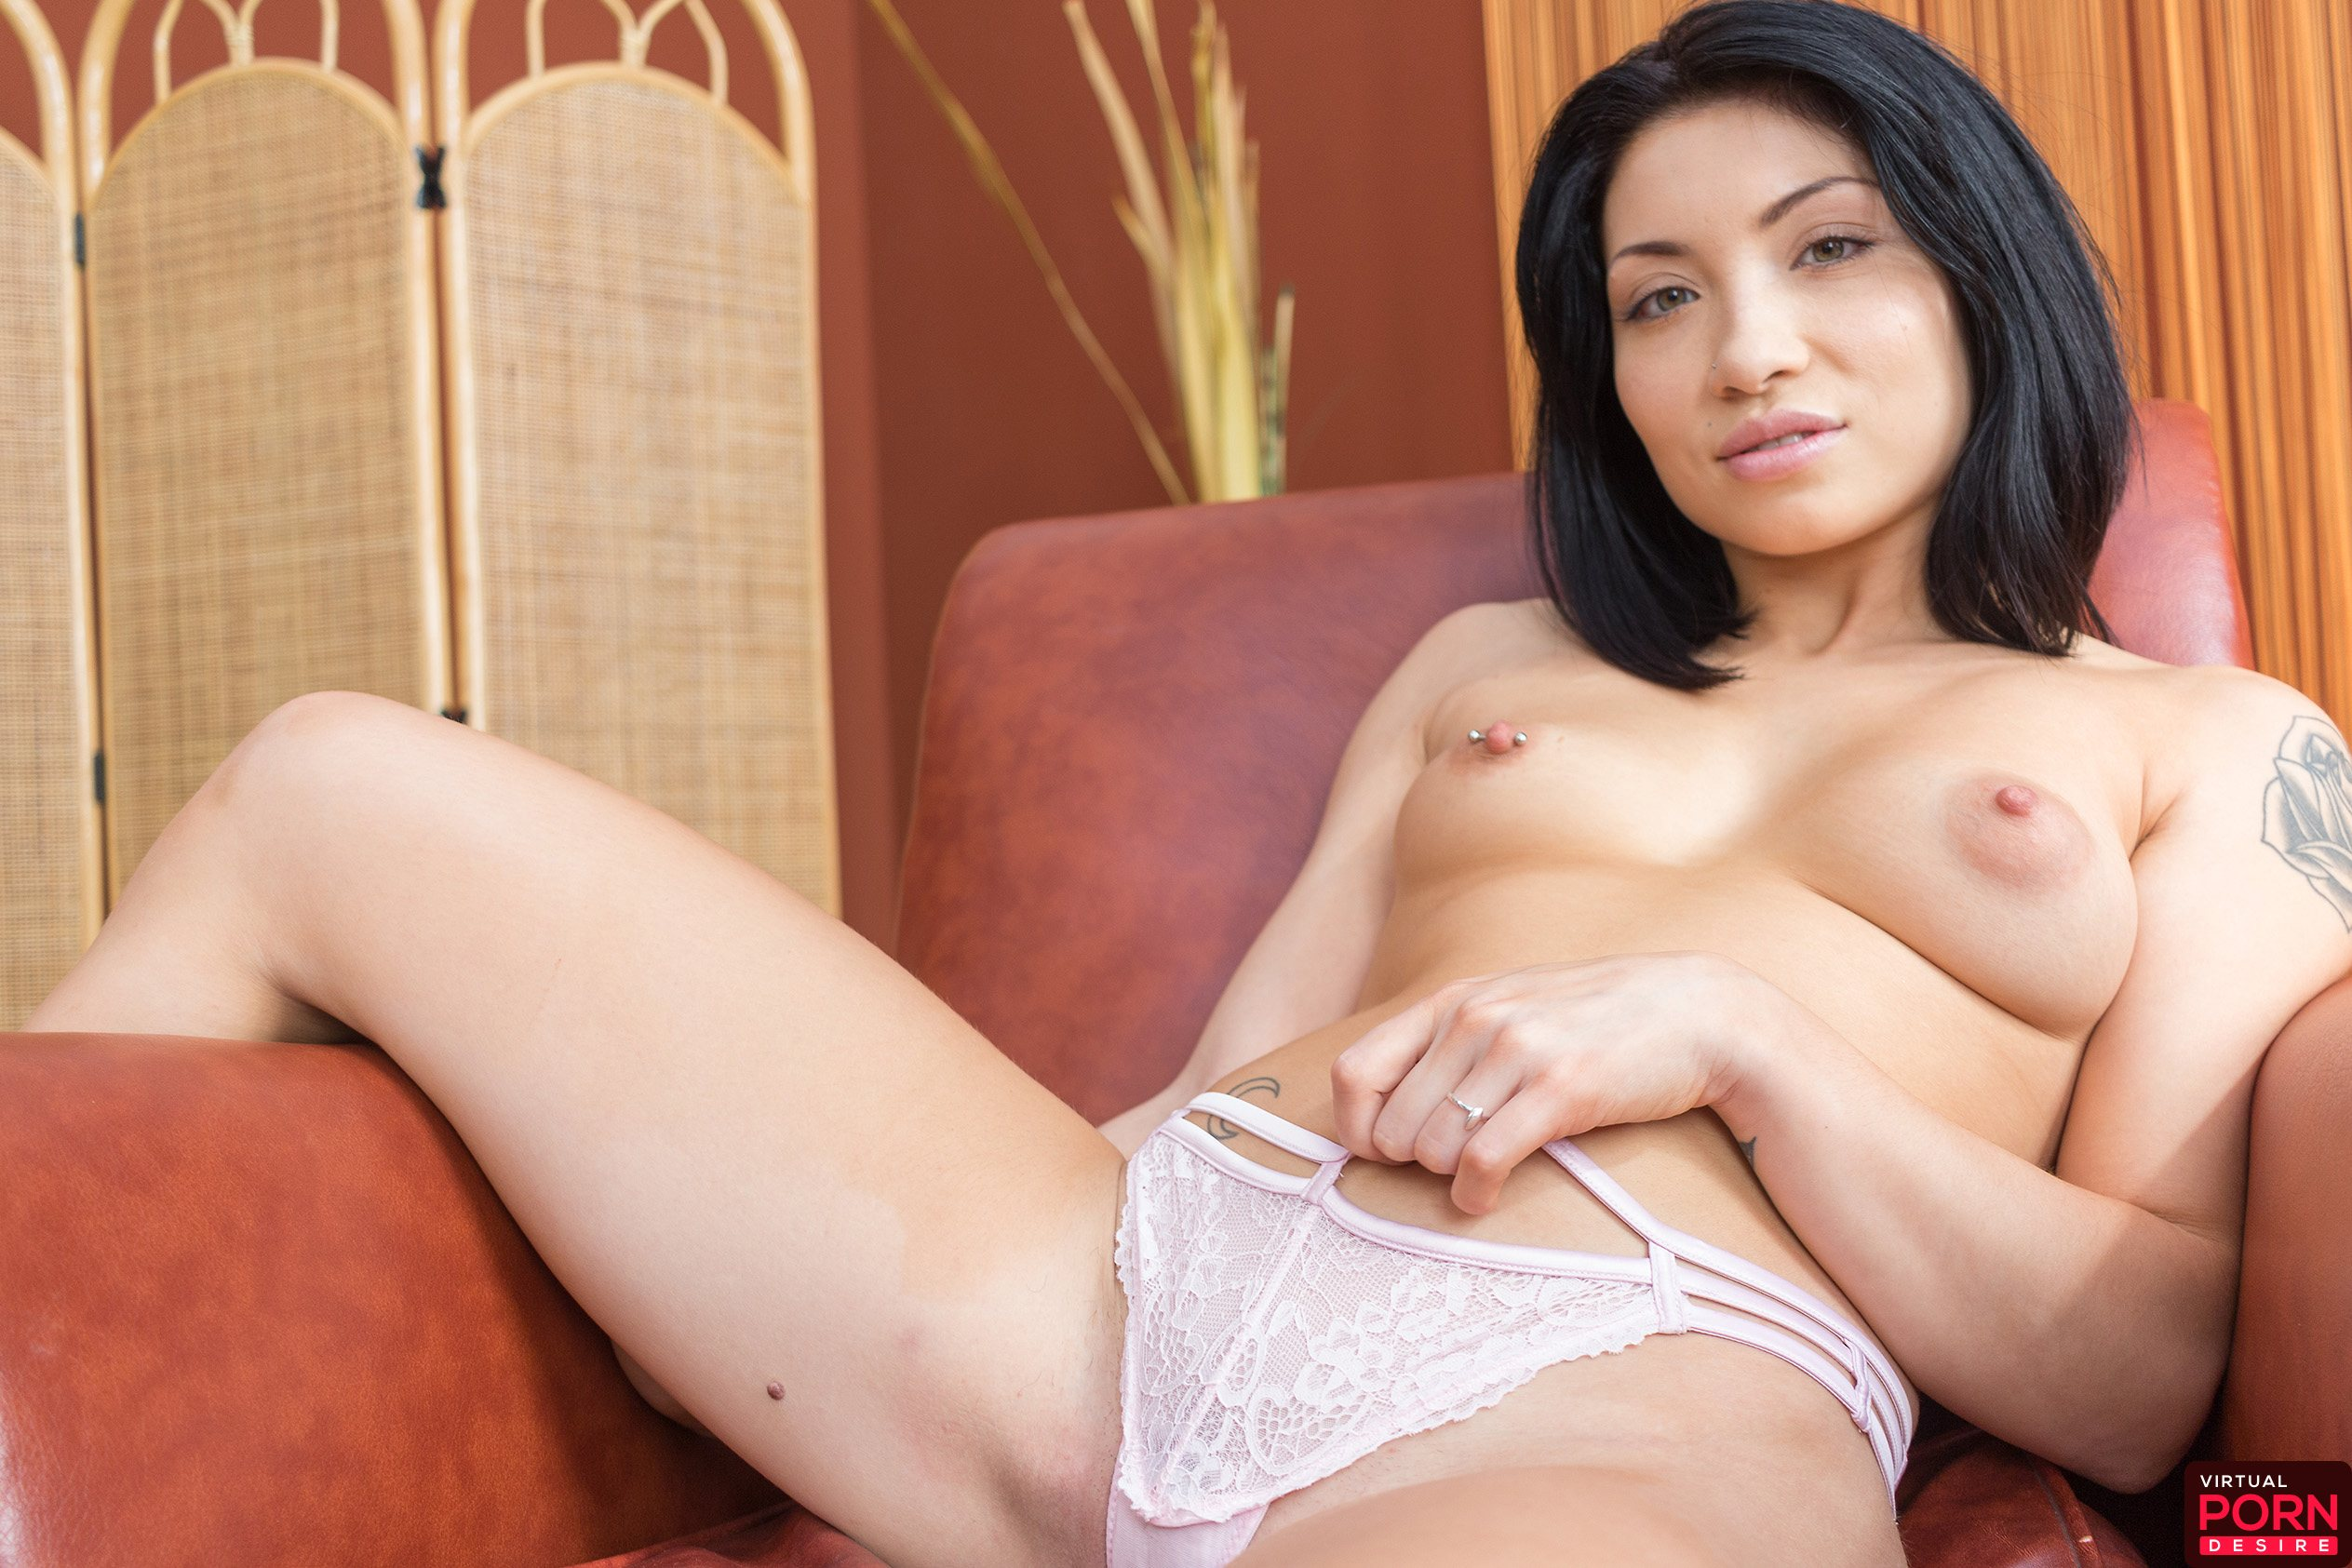 Hot Nude 18+ Porn mom son chinese